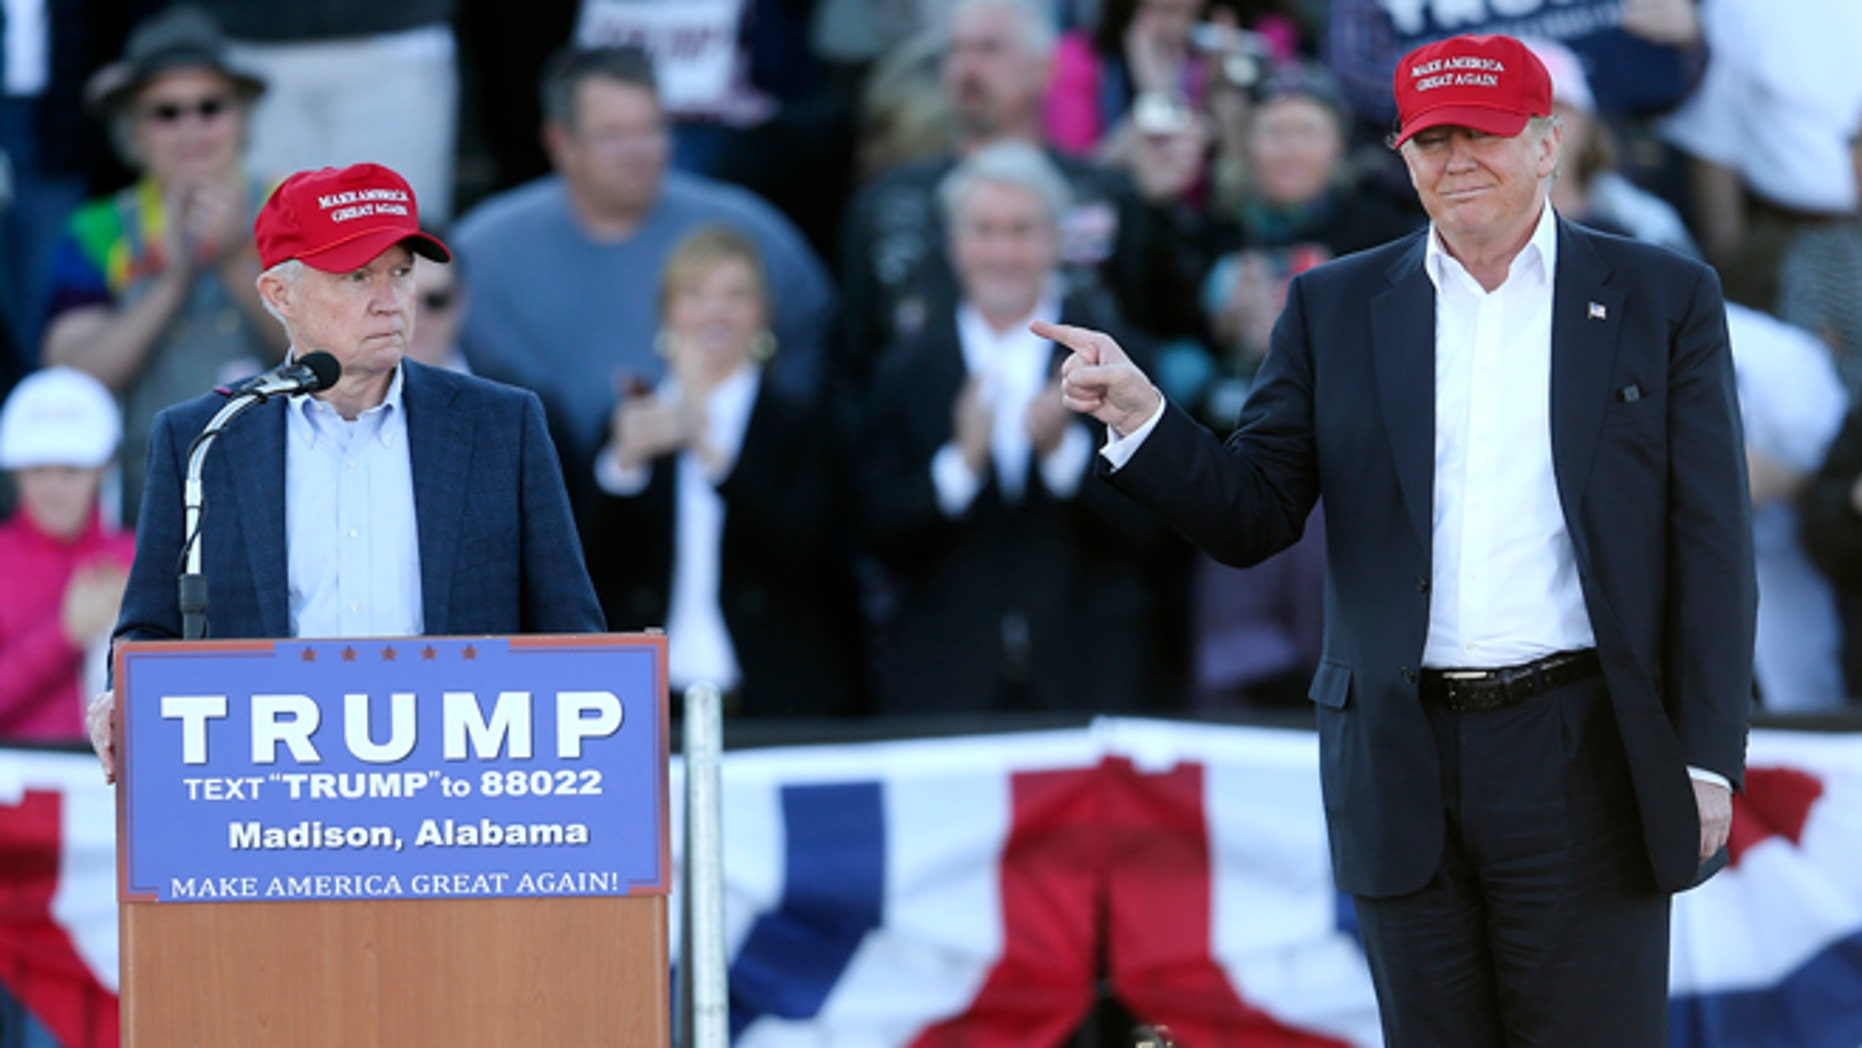 Donald Trump and Sen. Jeff Sessions during a rally Sunday, Feb. 28, 2016, in Madison, Ala.